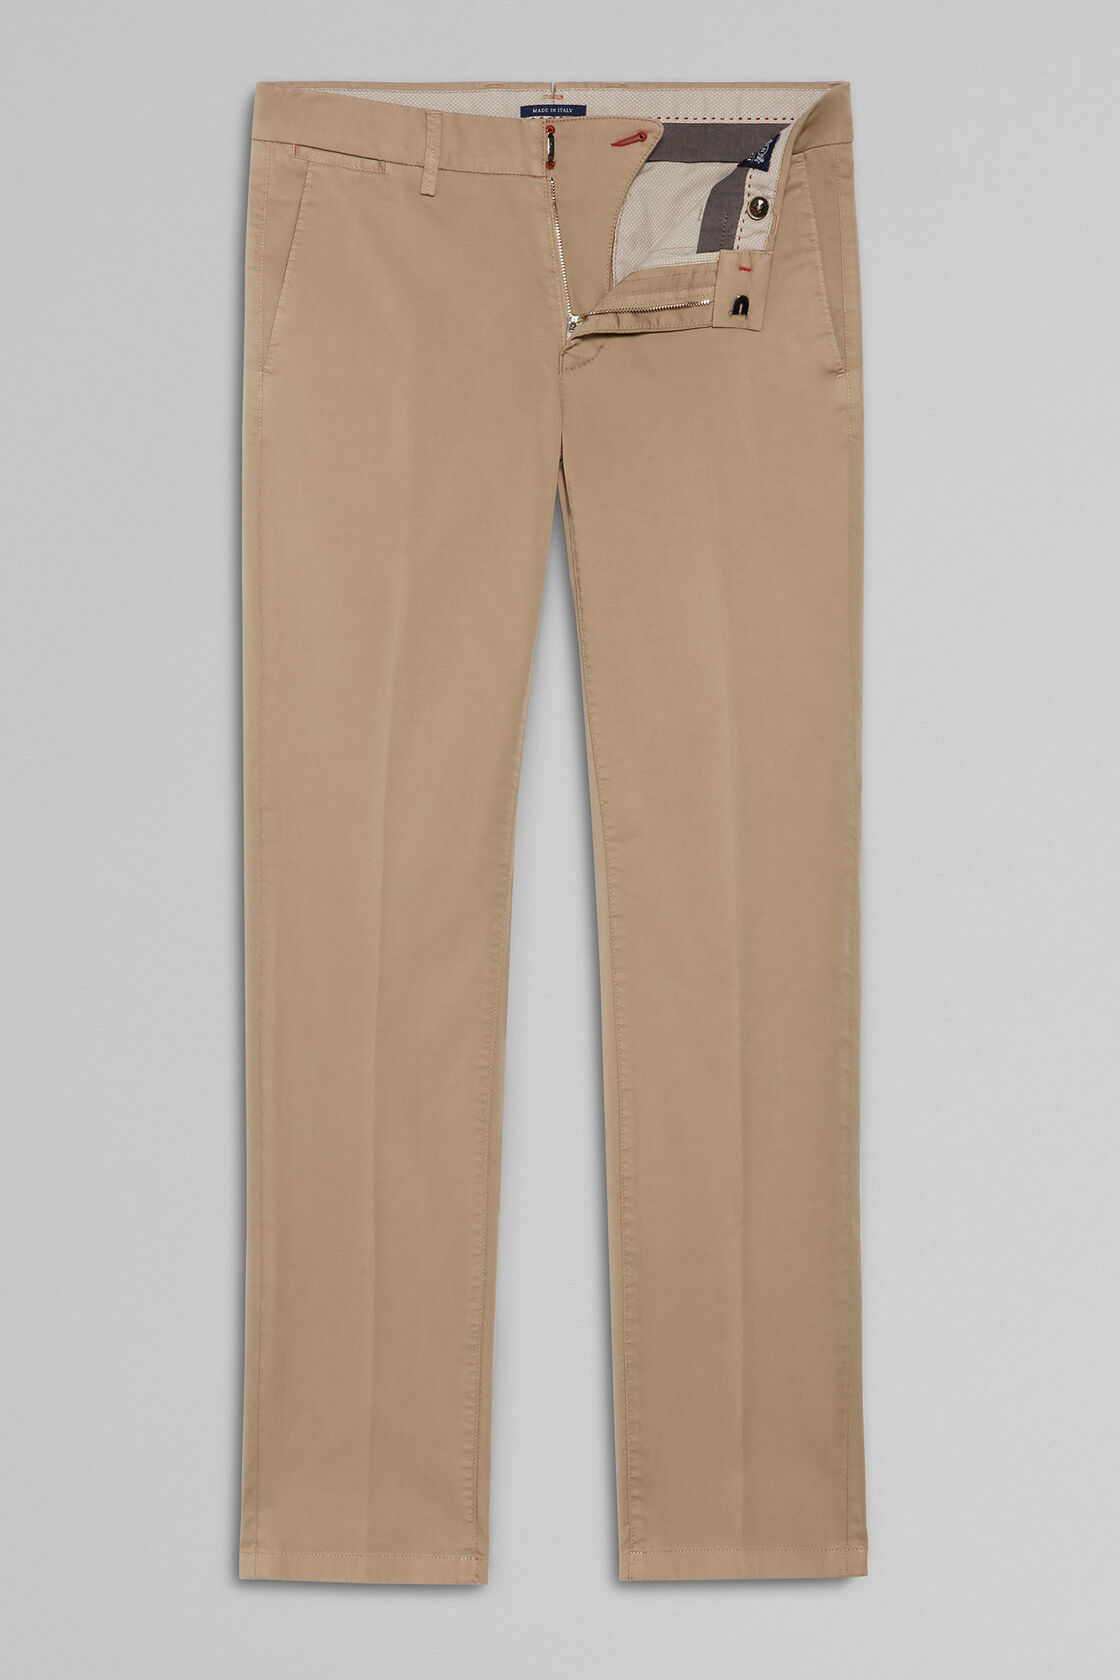 PANTALONE IN RASO DI COTONE STRETCH SLIM FIT, CAMMELLO, hi-res